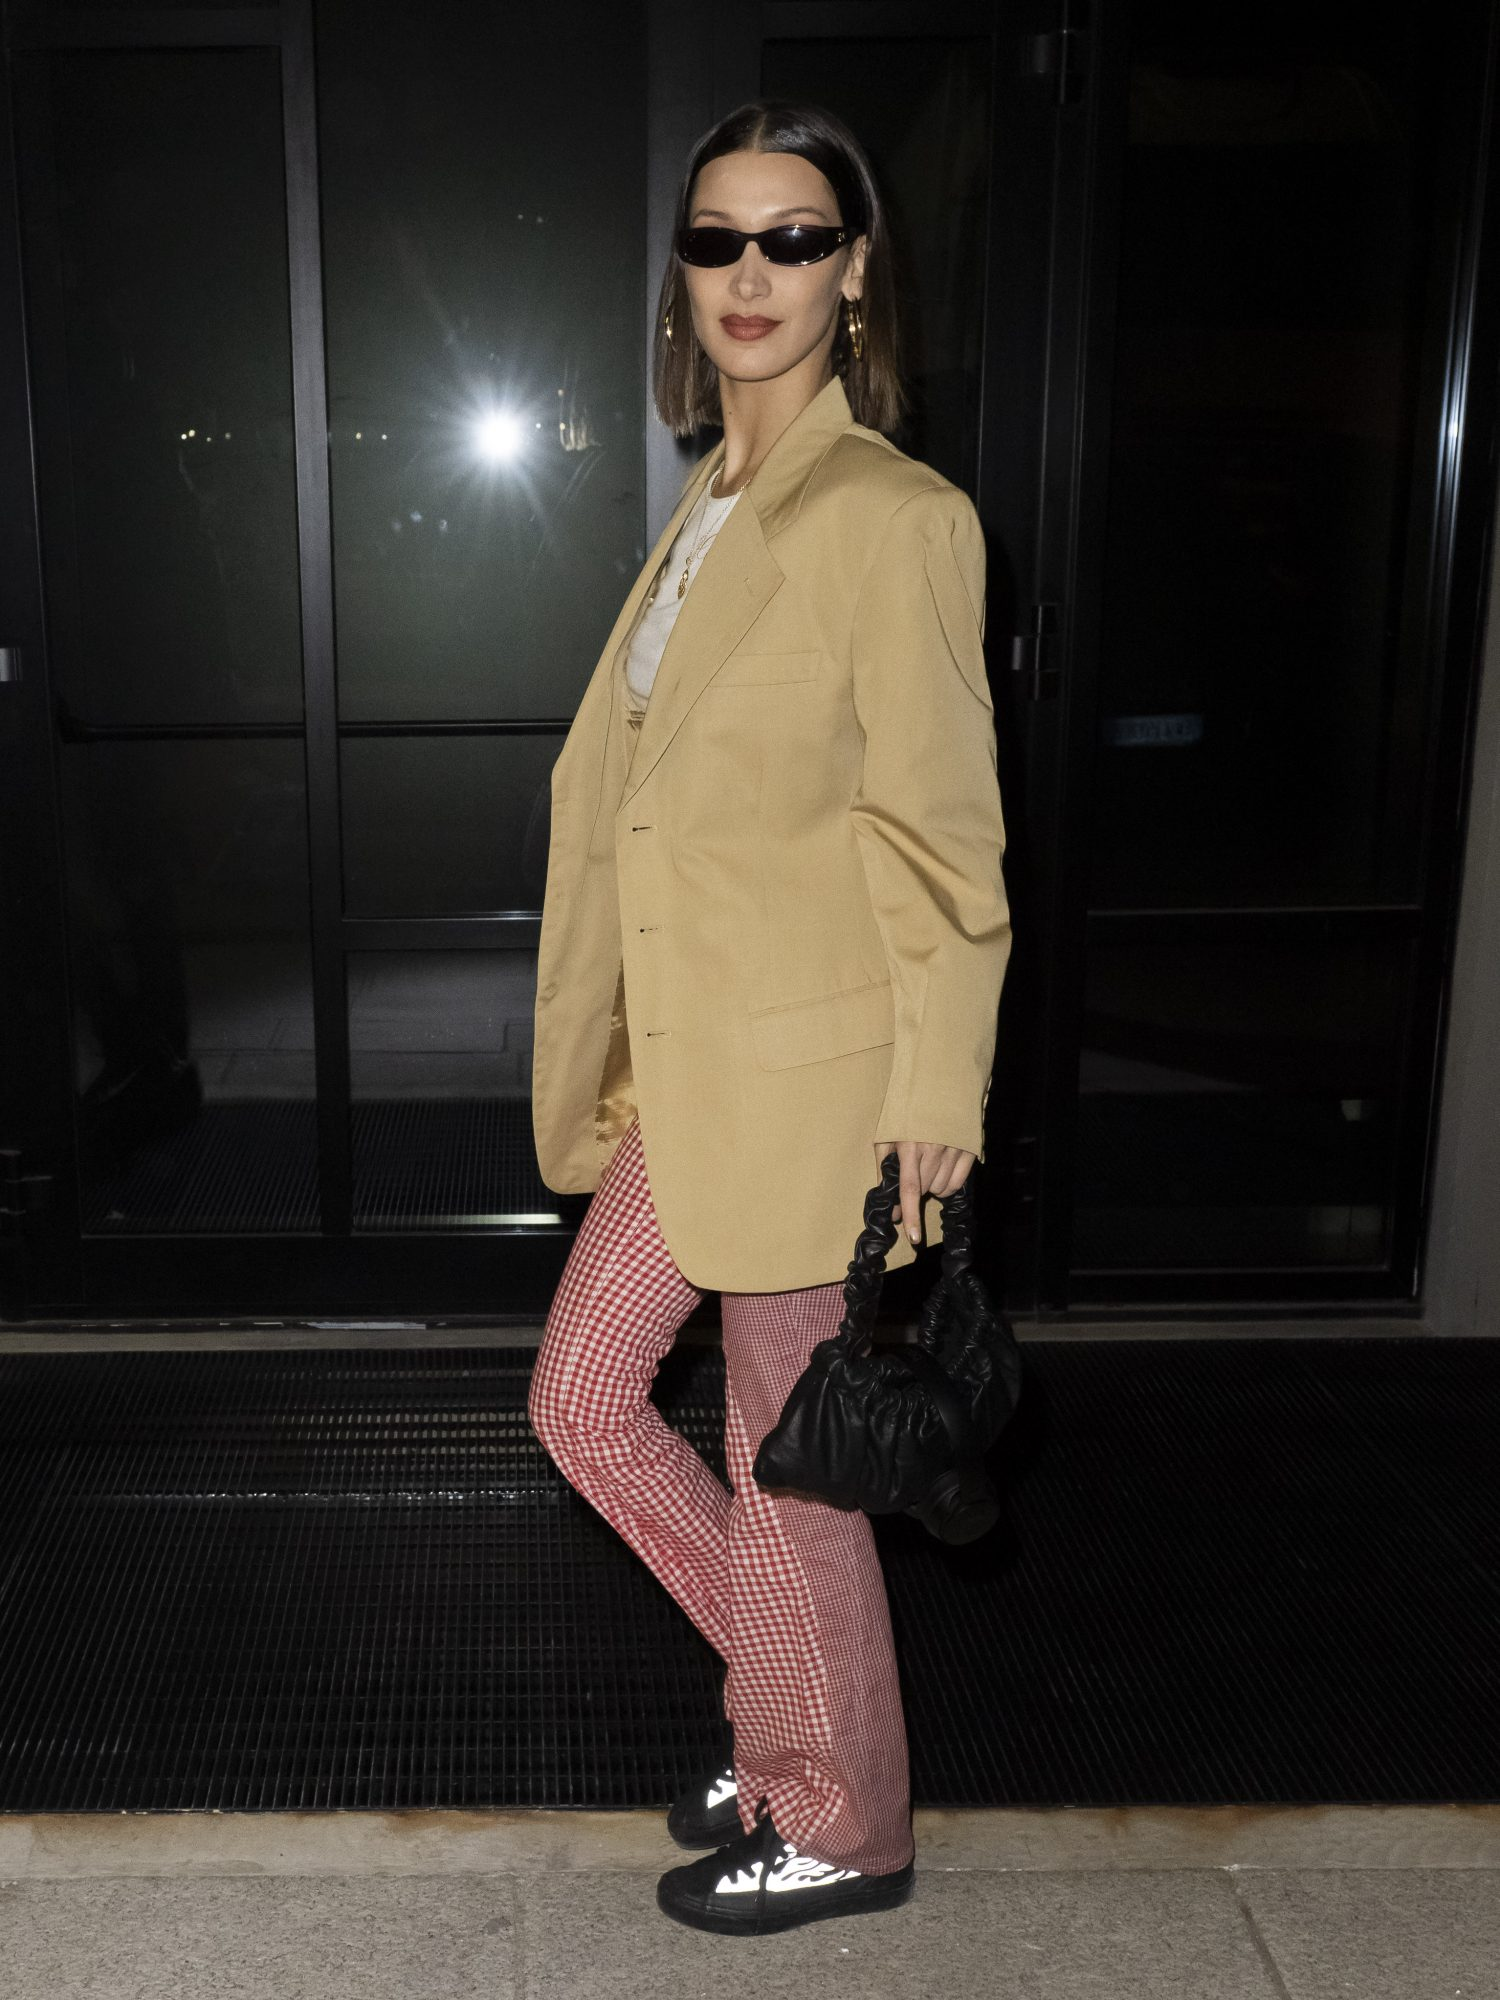 Celebrity Sightings: February 22nd - Milan Fashion Week Fall/Winter 2020-2021